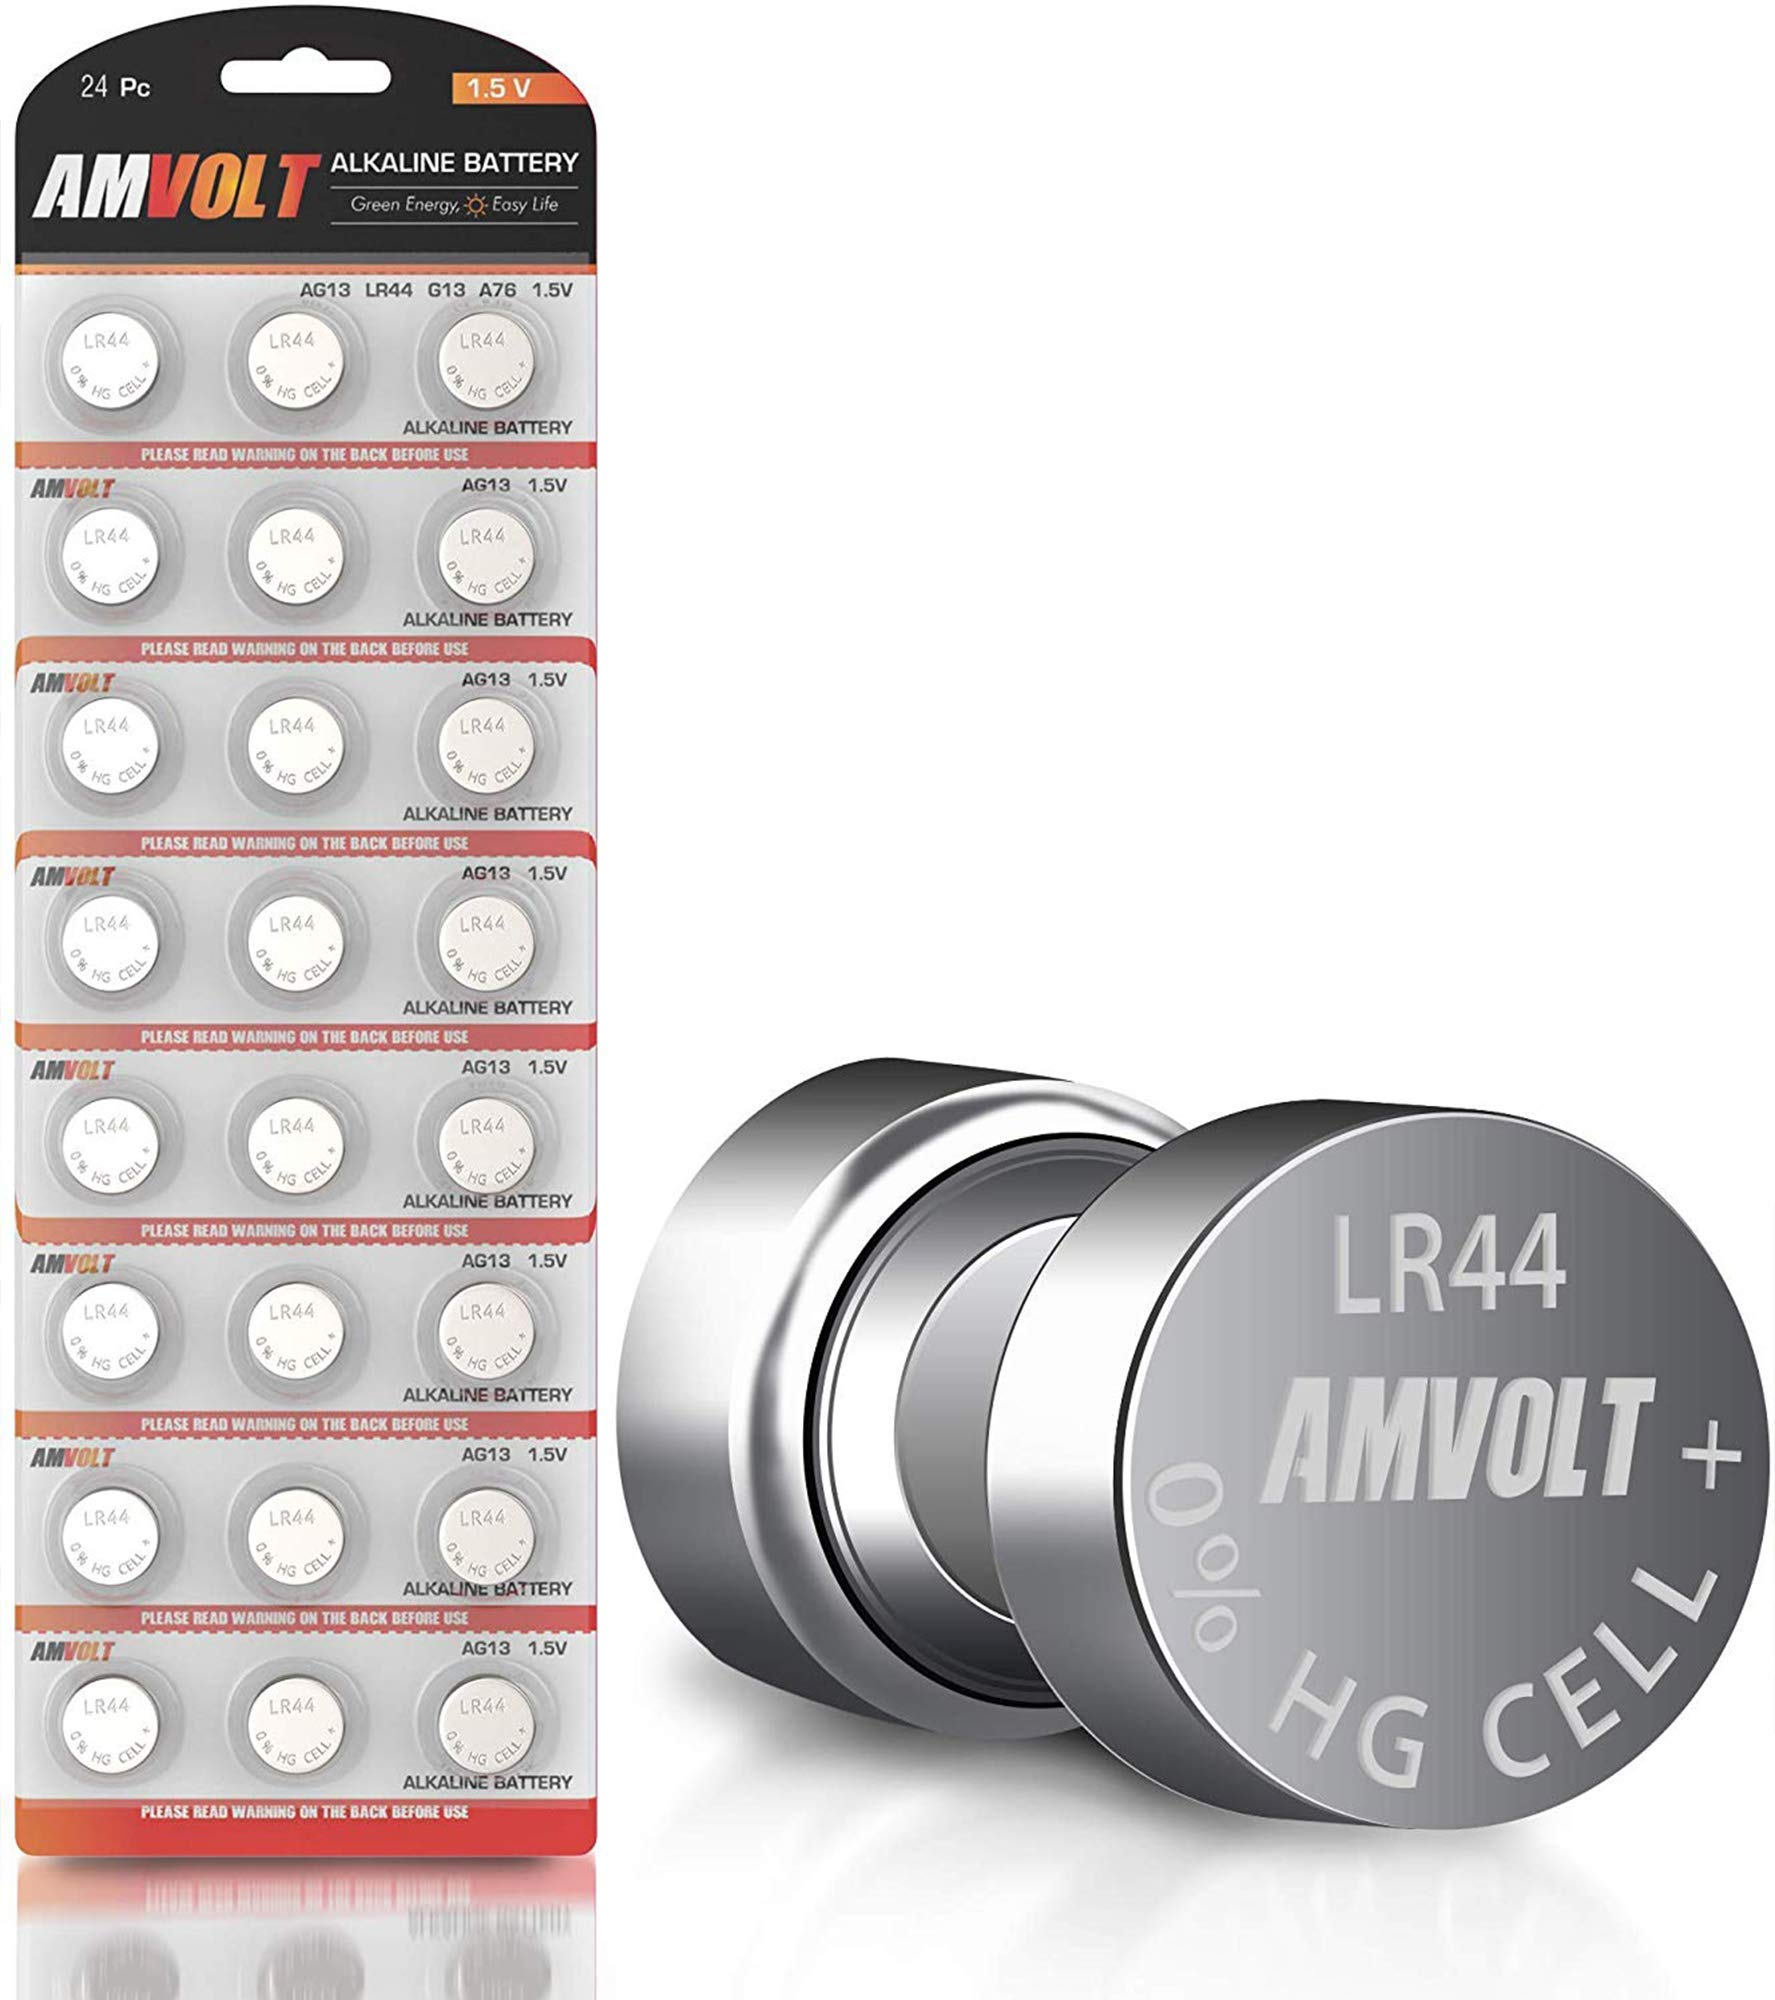 24 Pack LR44 AG13 SR44 357 303 LR44G Battery - [Ultra Power] Premium Alkaline 1.5 Volt Non Rechargeable Round Button Cell Batteries for Watches Clocks & Electronic Devices - 2023 Exp Date